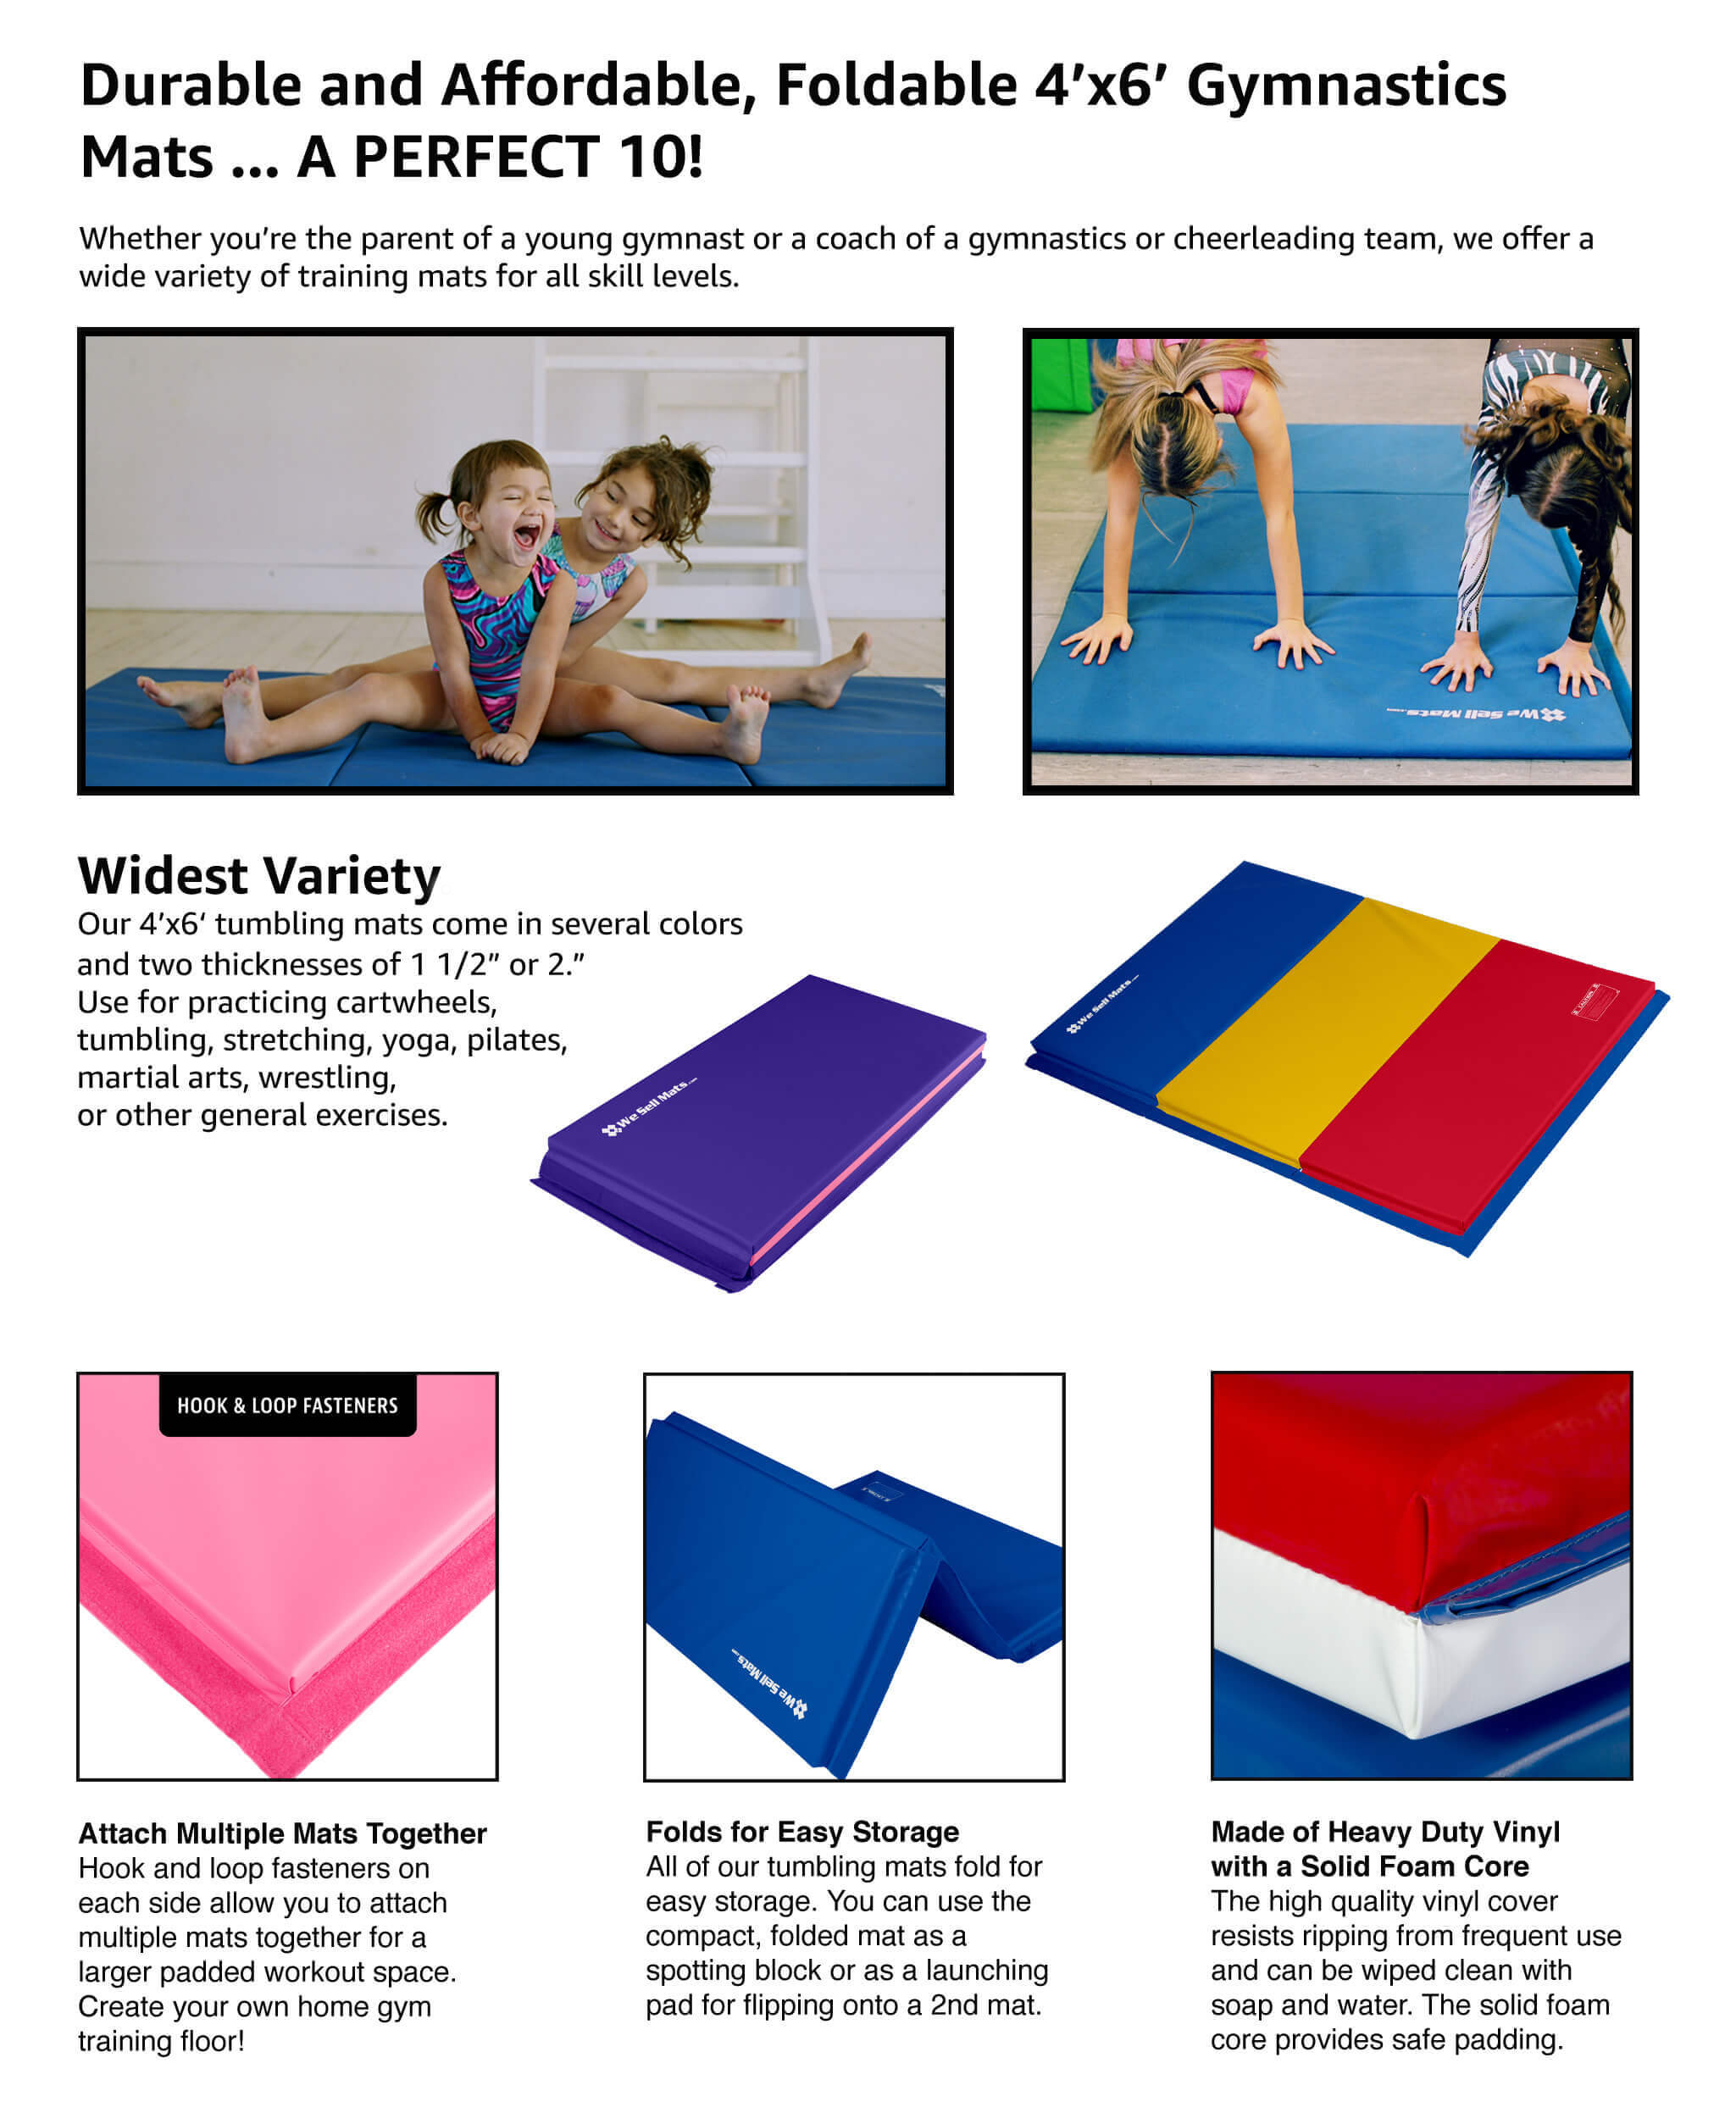 4x6-gymnastics-tumbling-mats-description.jpg